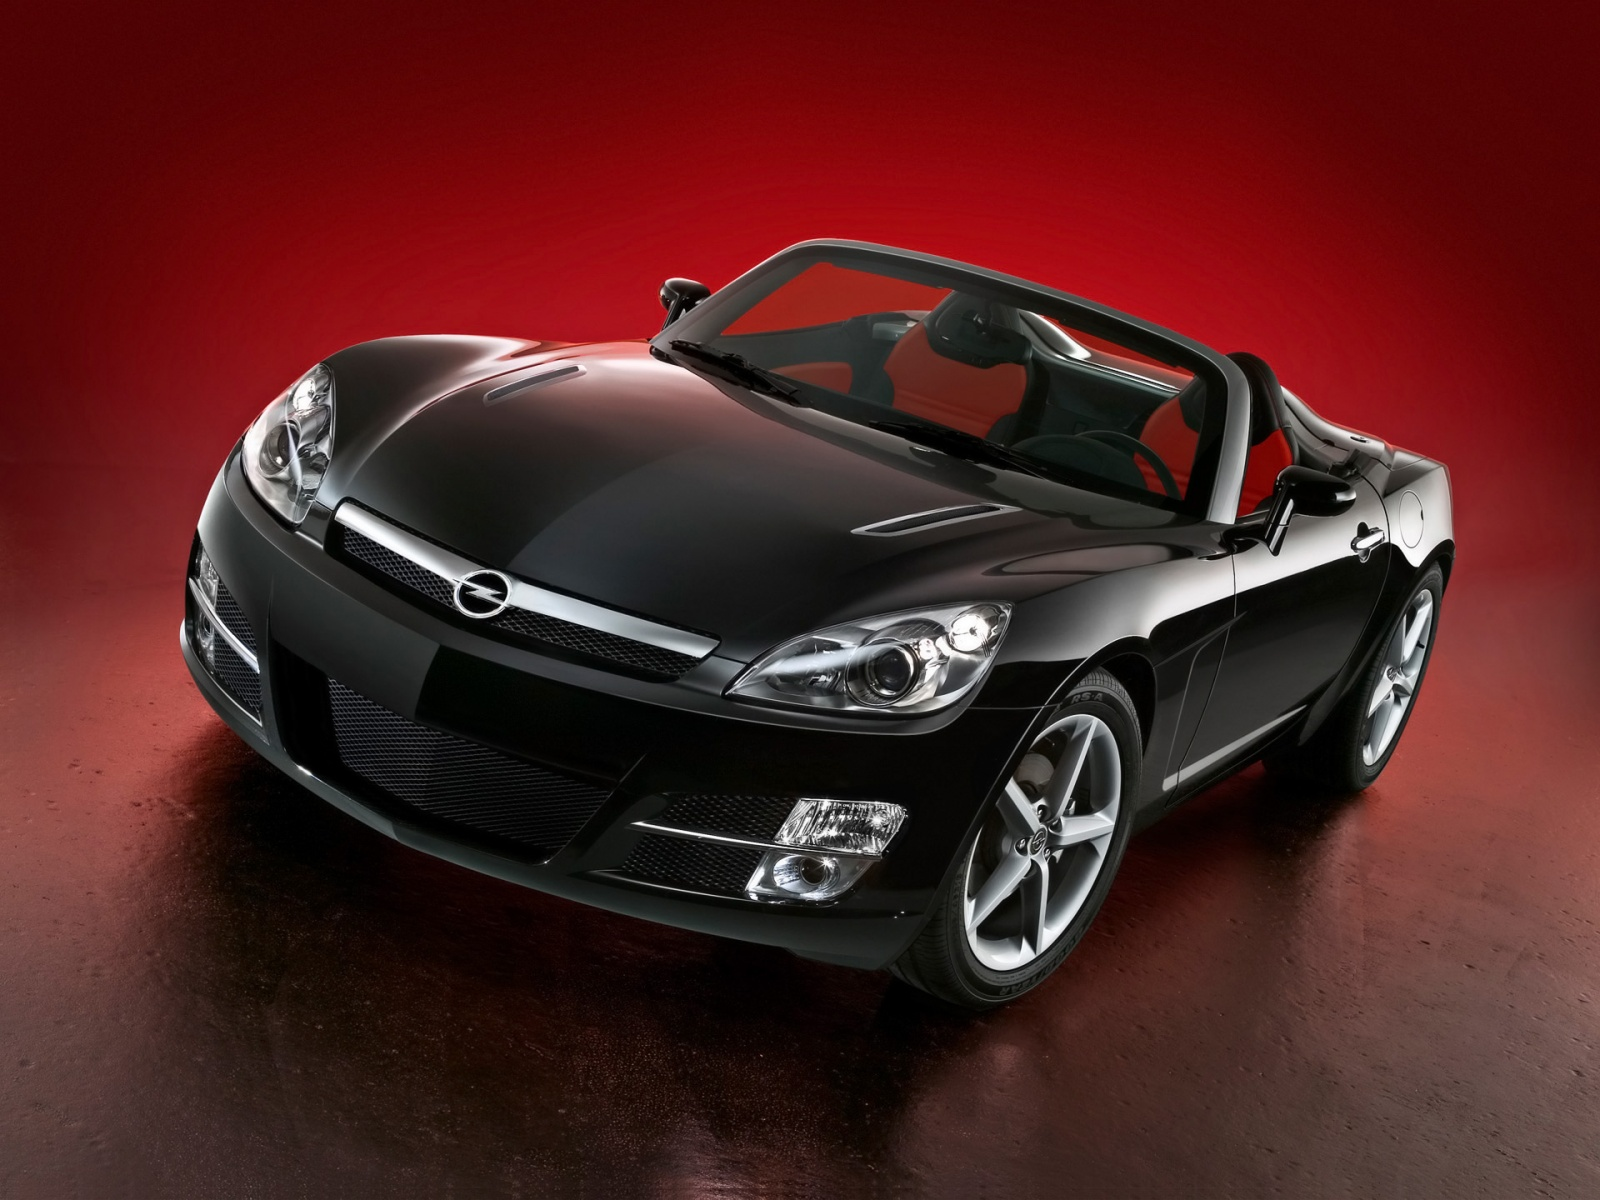 opel gt roadster technical details history photos on better parts ltd. Black Bedroom Furniture Sets. Home Design Ideas